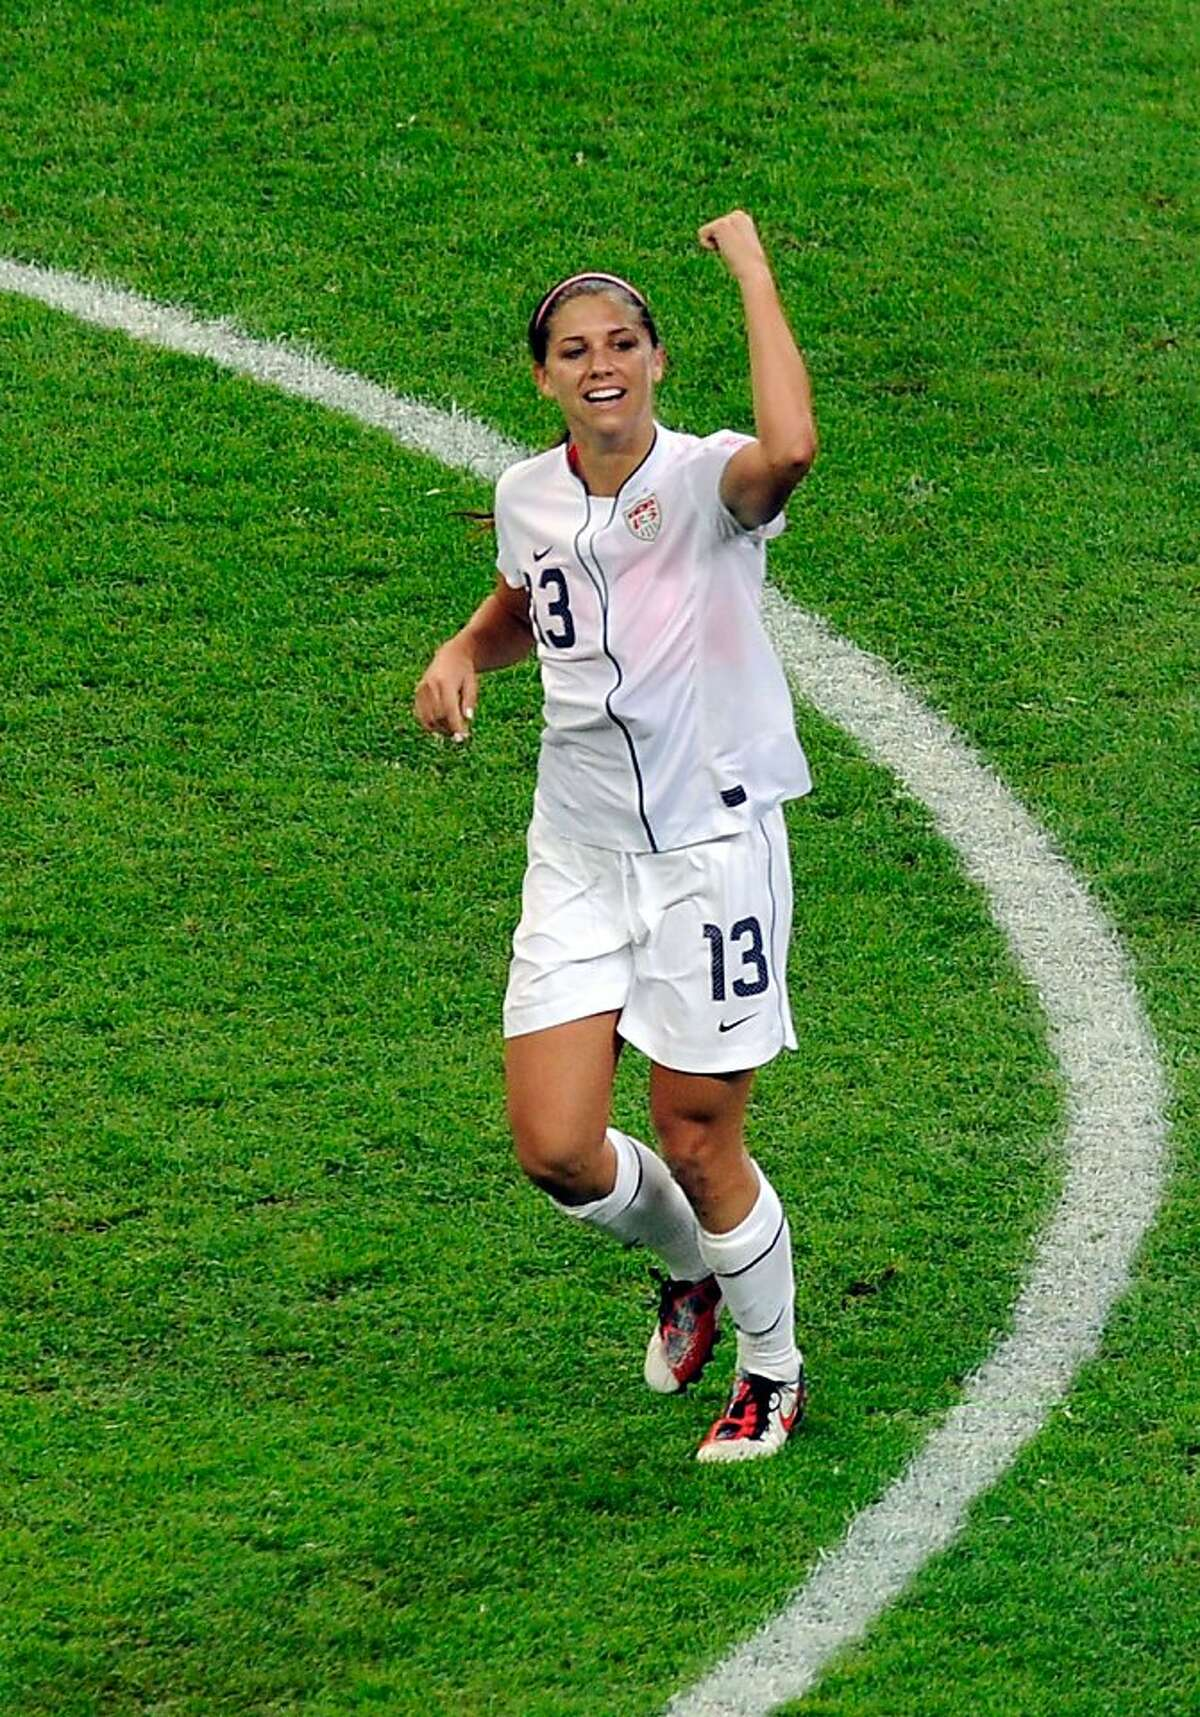 Alex Morgan of United States celebrates after scoring her team's first goal during the FIFA Women's World Cup Final between the United States of America and Japan at FIFA World Cup stadium on July 17, 2011 in Frankfurt, Germany.